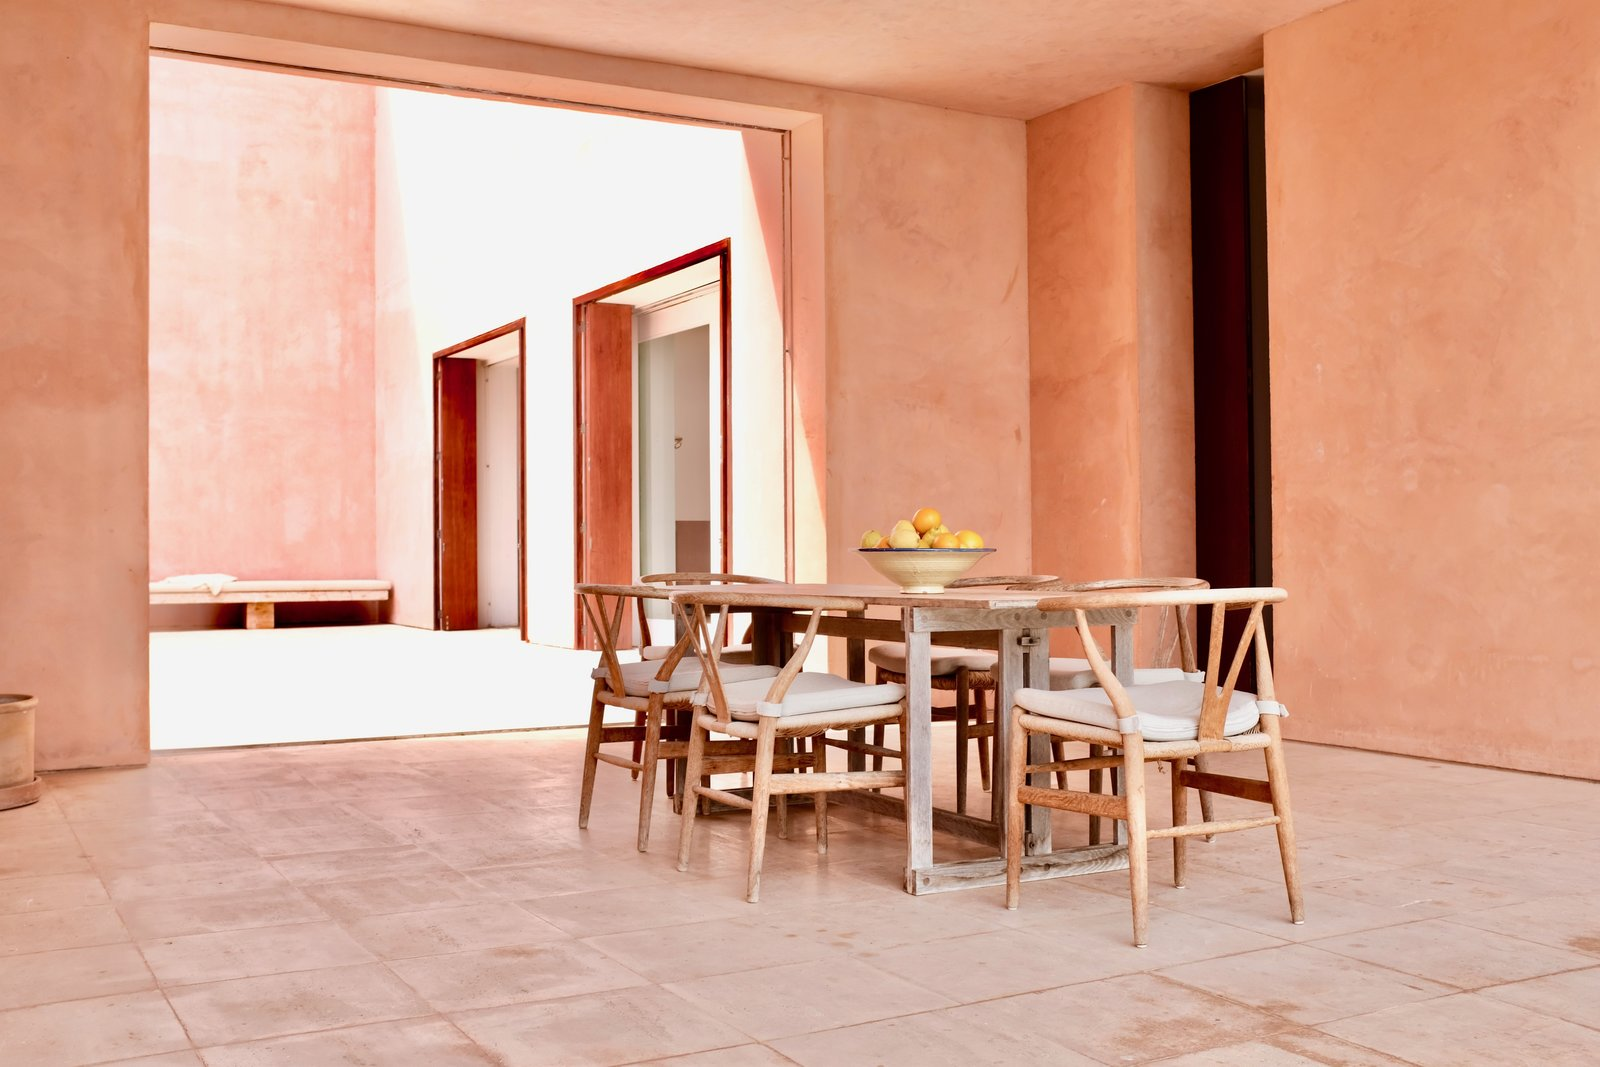 Dining Room, Chair, and Table This Mallorcan villa was Pawson's firm's first full architectural project. It was originally built for German art dealers, who Pawson had met by chance on an Italian beach. Acclaimed for his minimalism, this beautiful abode is no different.     Photo 1 of 11 in This John Pawson-Designed Retreat in Mallorca Is a Minimalist's Dream